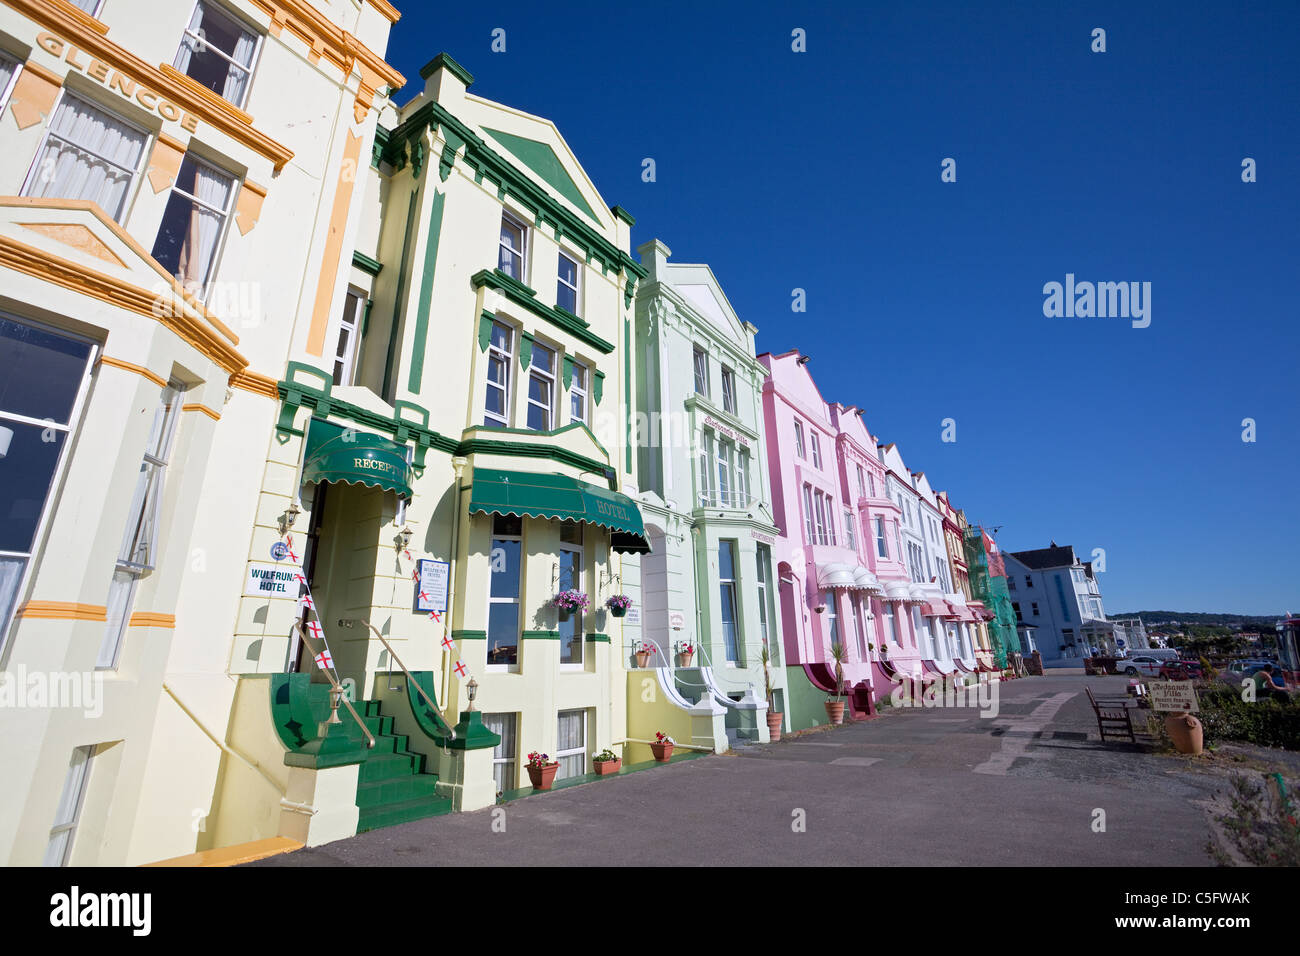 Hotels And Guest Houses In Paignton Devon